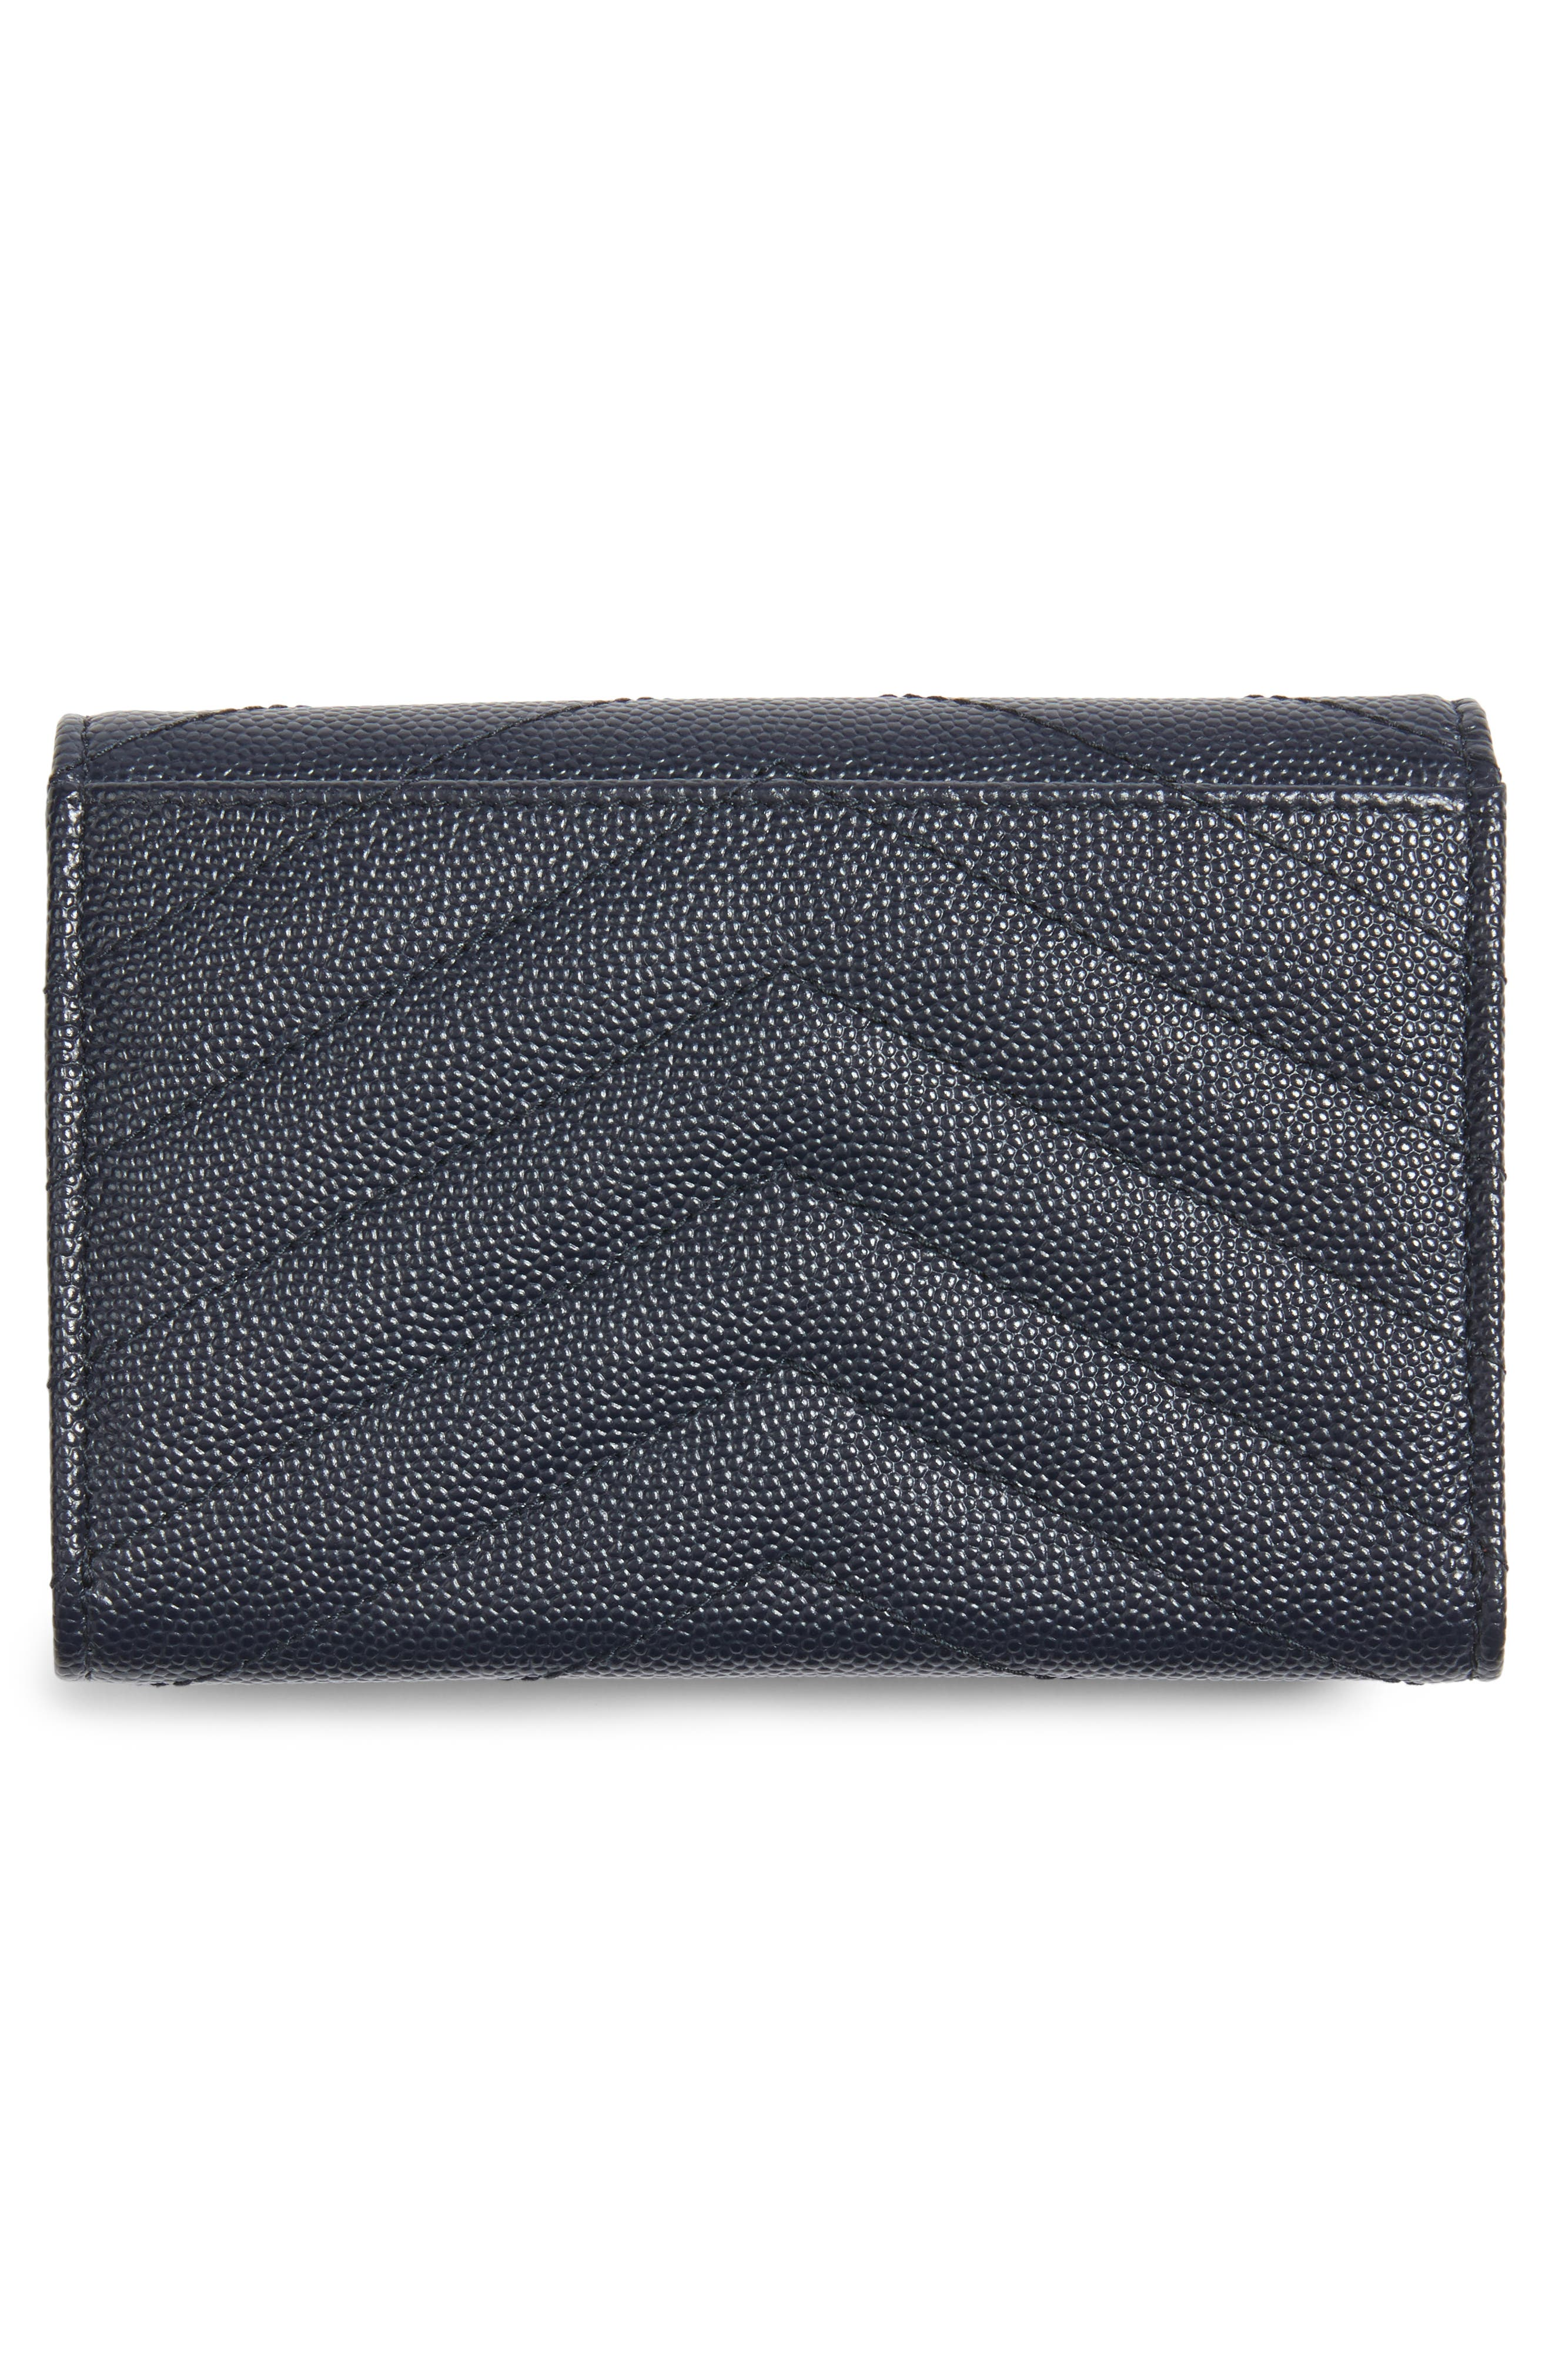 'Small Monogram' Leather French Wallet,                             Alternate thumbnail 24, color,